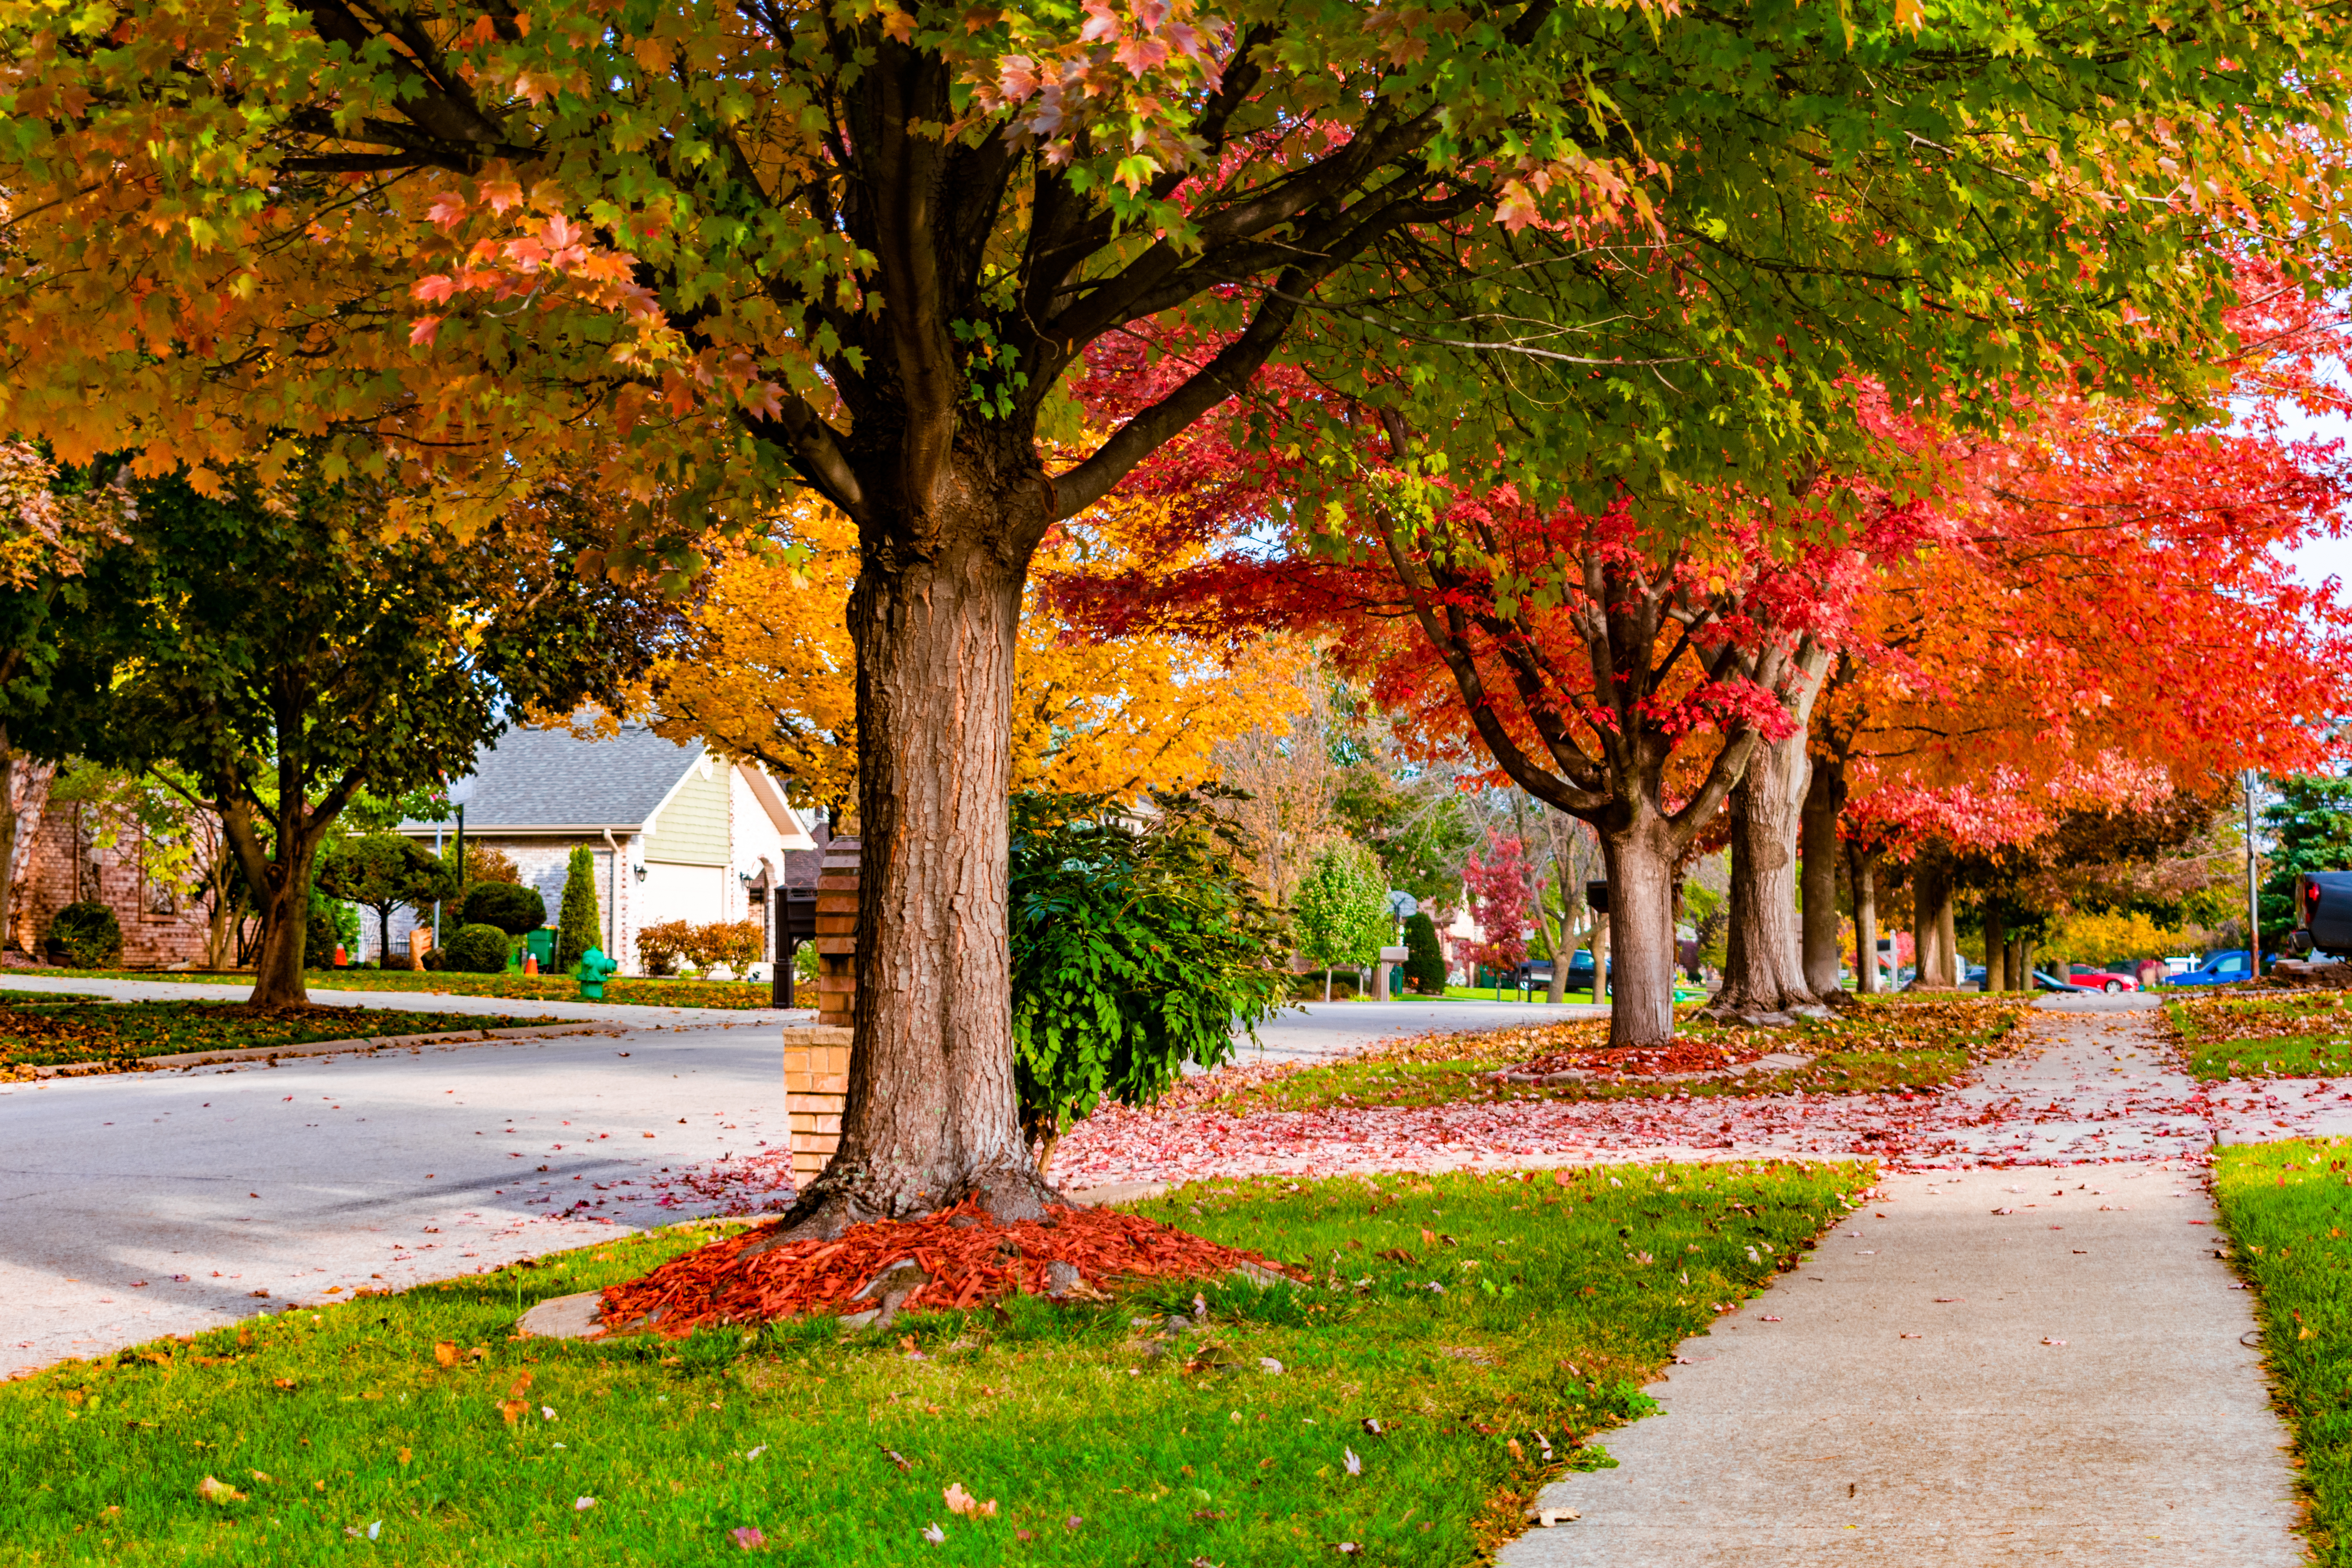 Your lawn needs care in the fall.